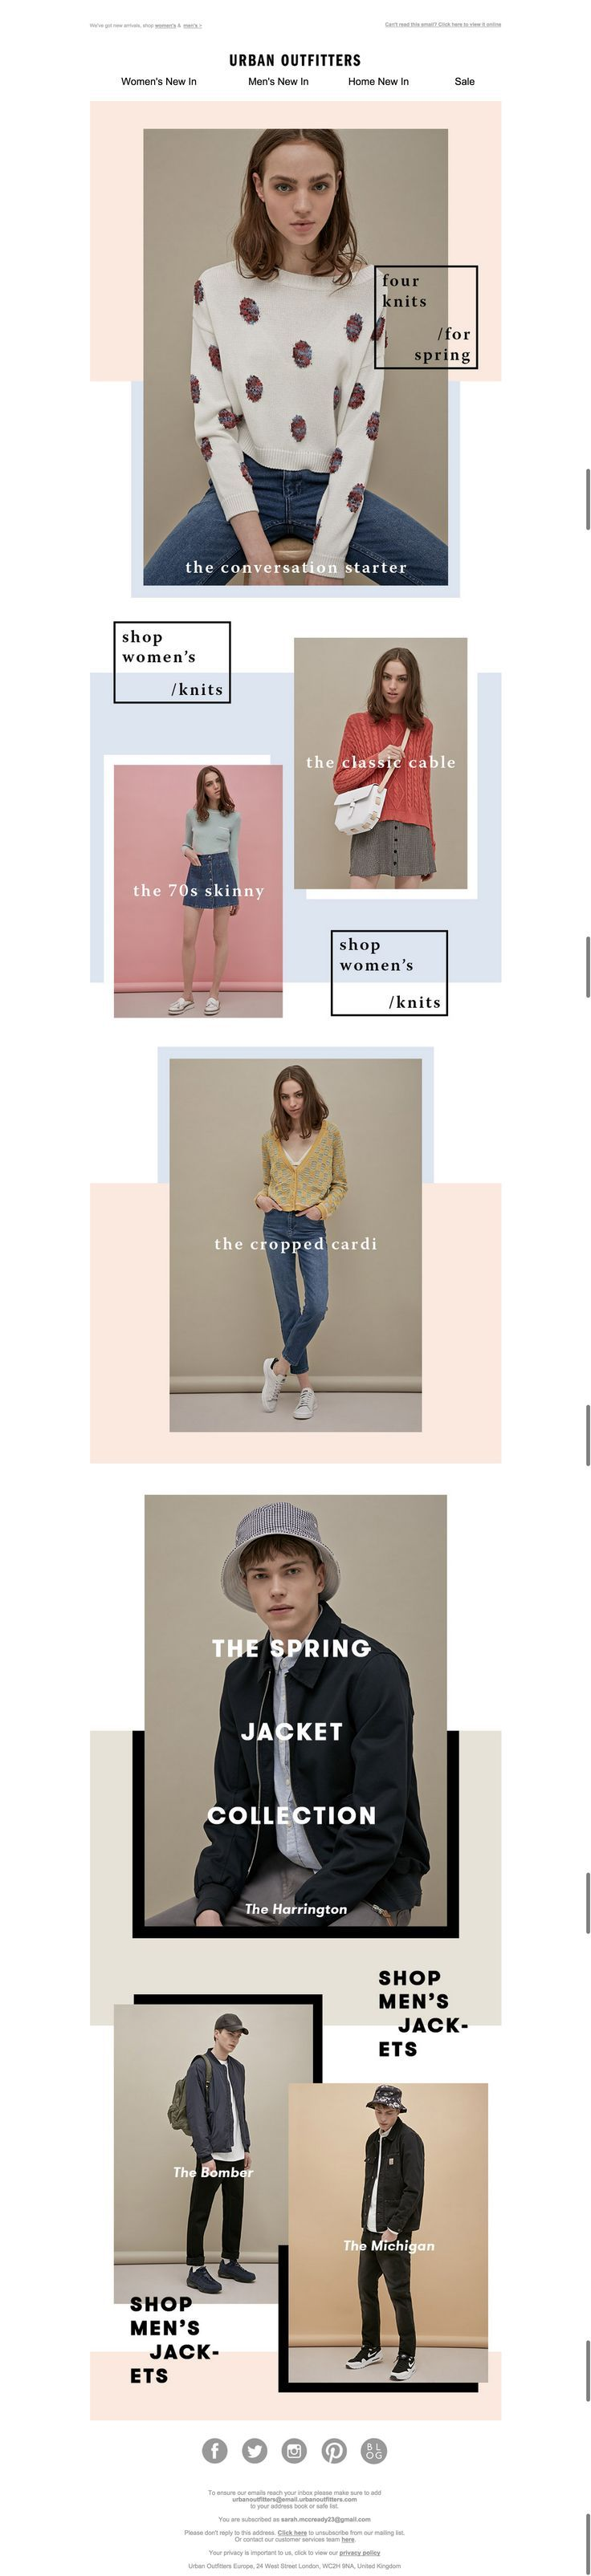 COLOUR STORIES - the colour blocking is effective here to not only link the images but convey spring